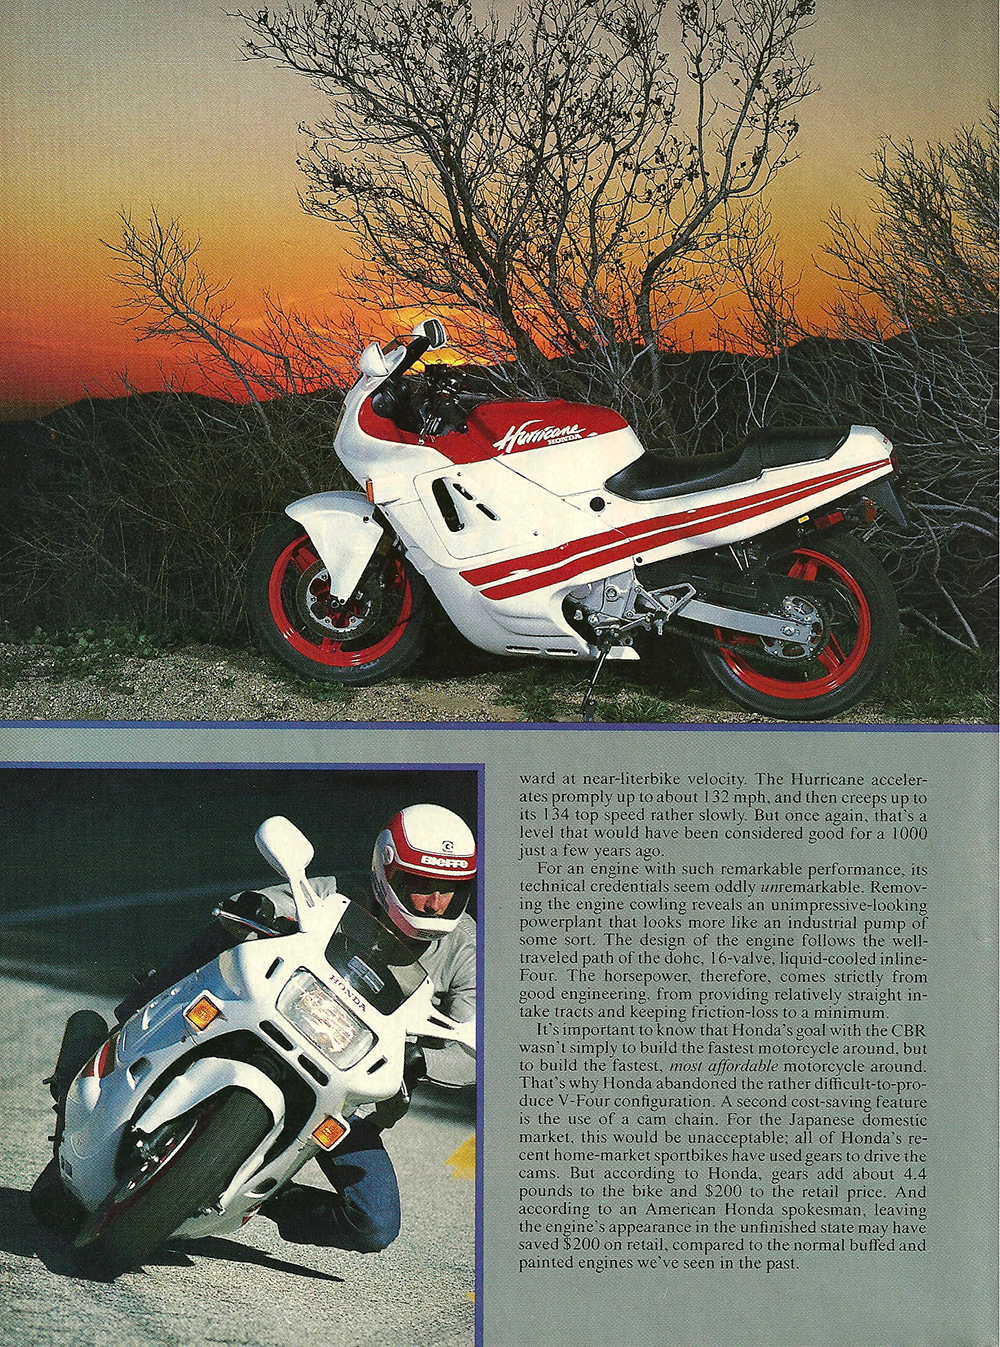 1987 Honda CBR600F Hurricane road test 03.jpg